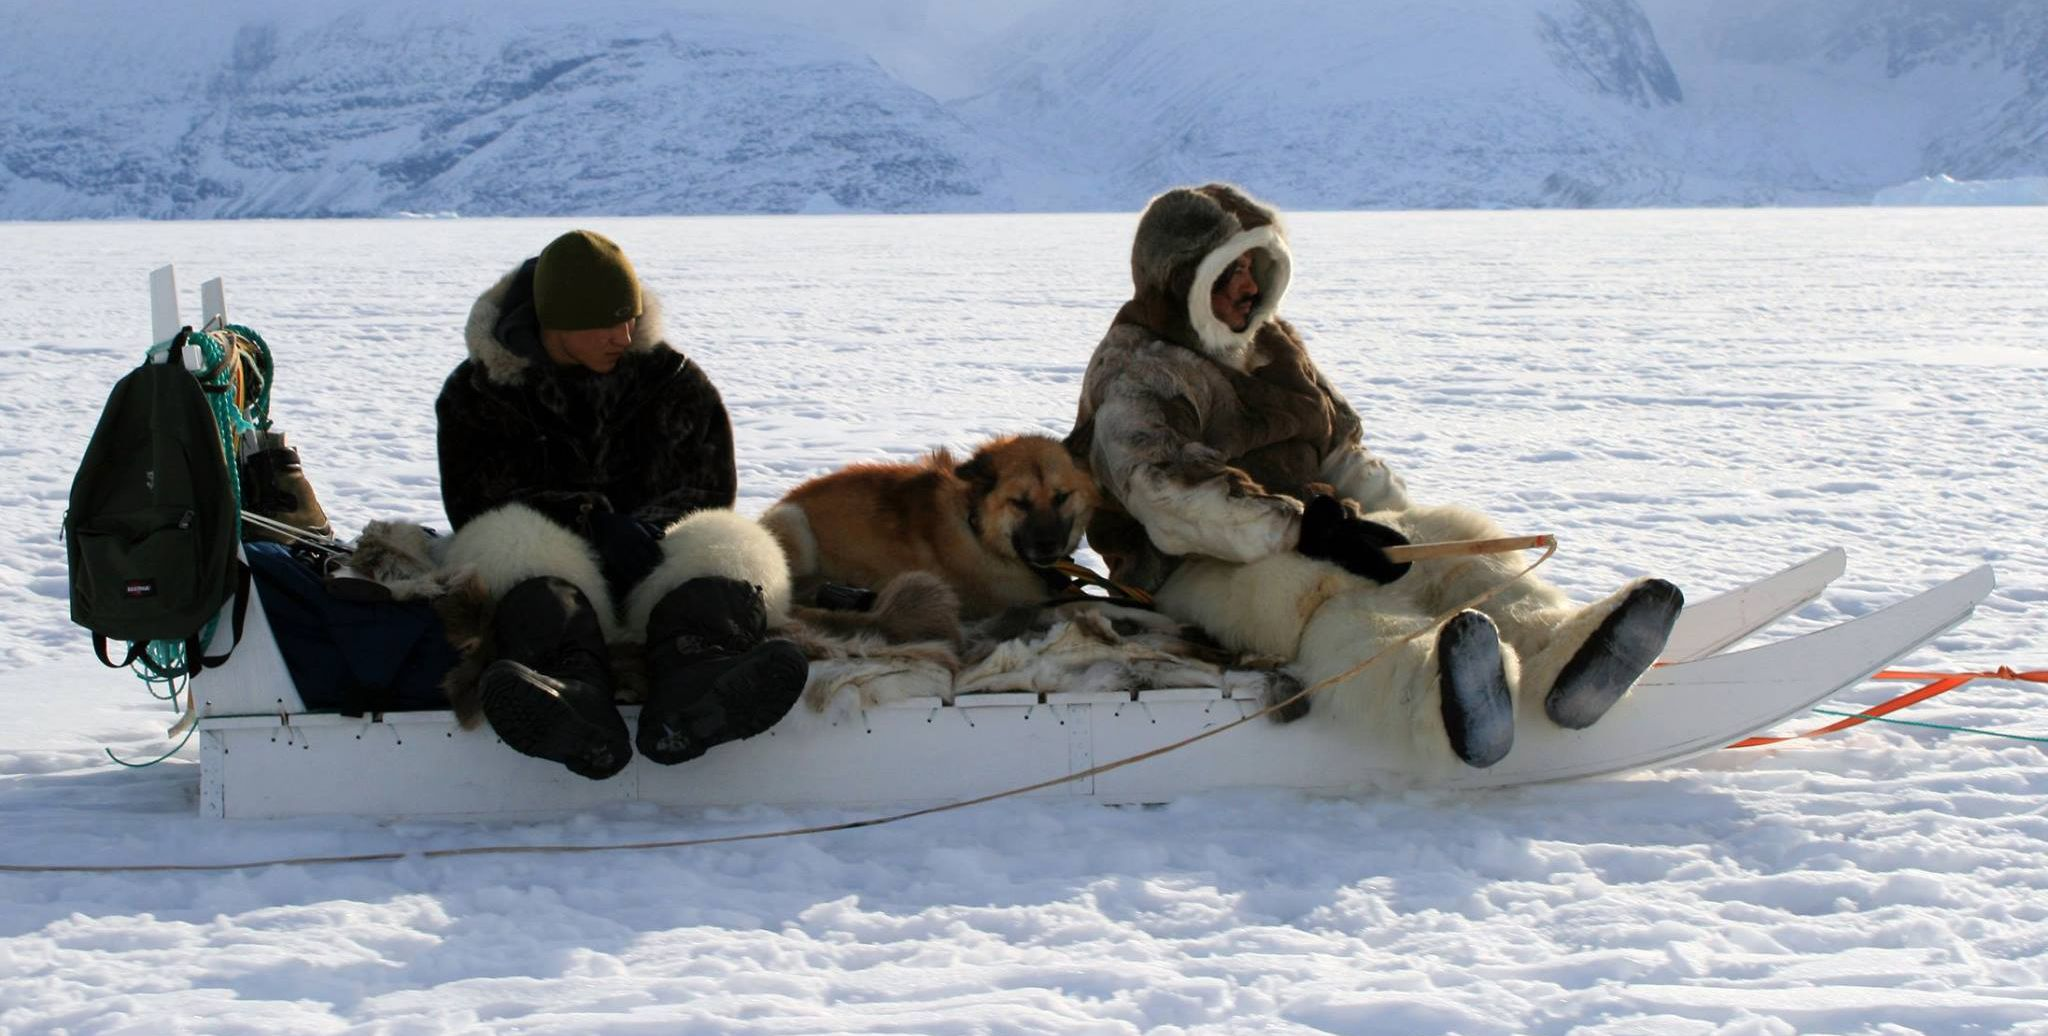 An image from Inuk